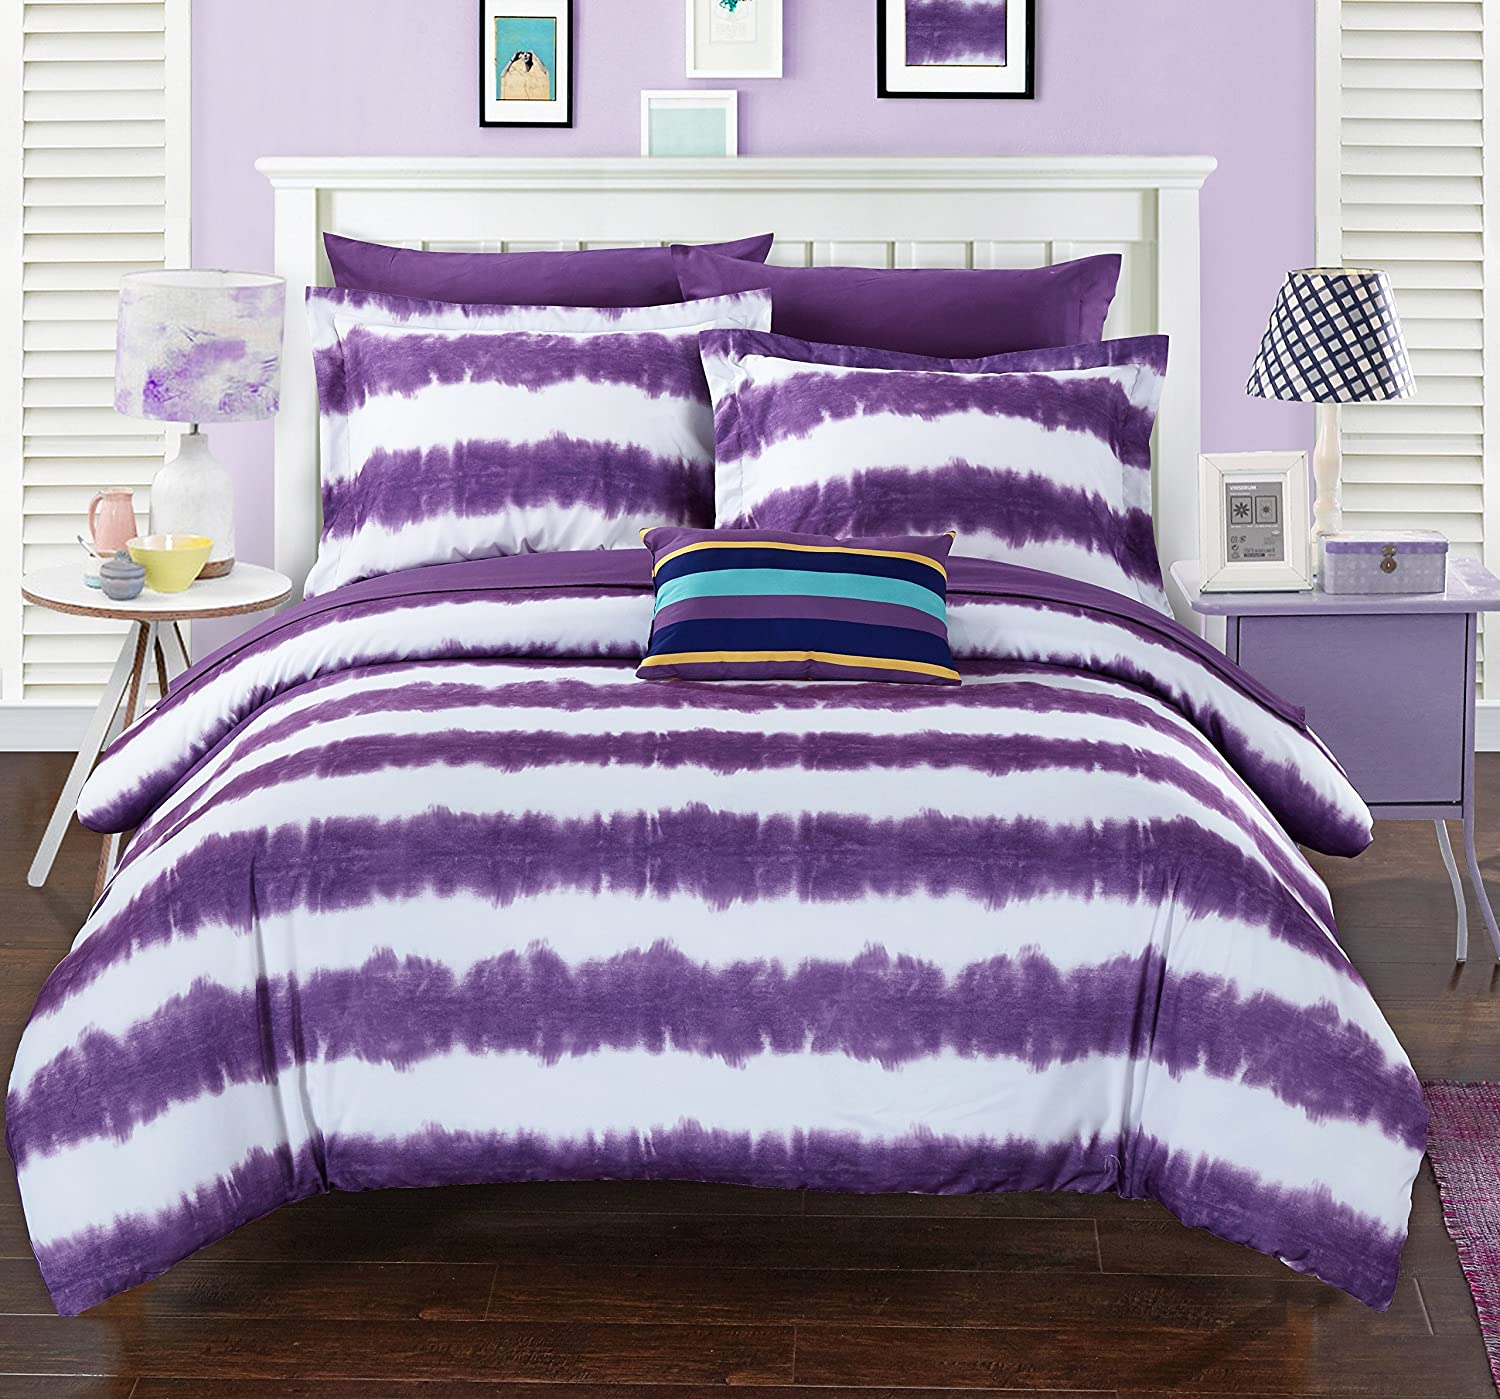 Solid dark purple bedding - Chic Home 7 Piece Benjamin Striped Hand Dipped Shibori Tie Dye Printed Twin X